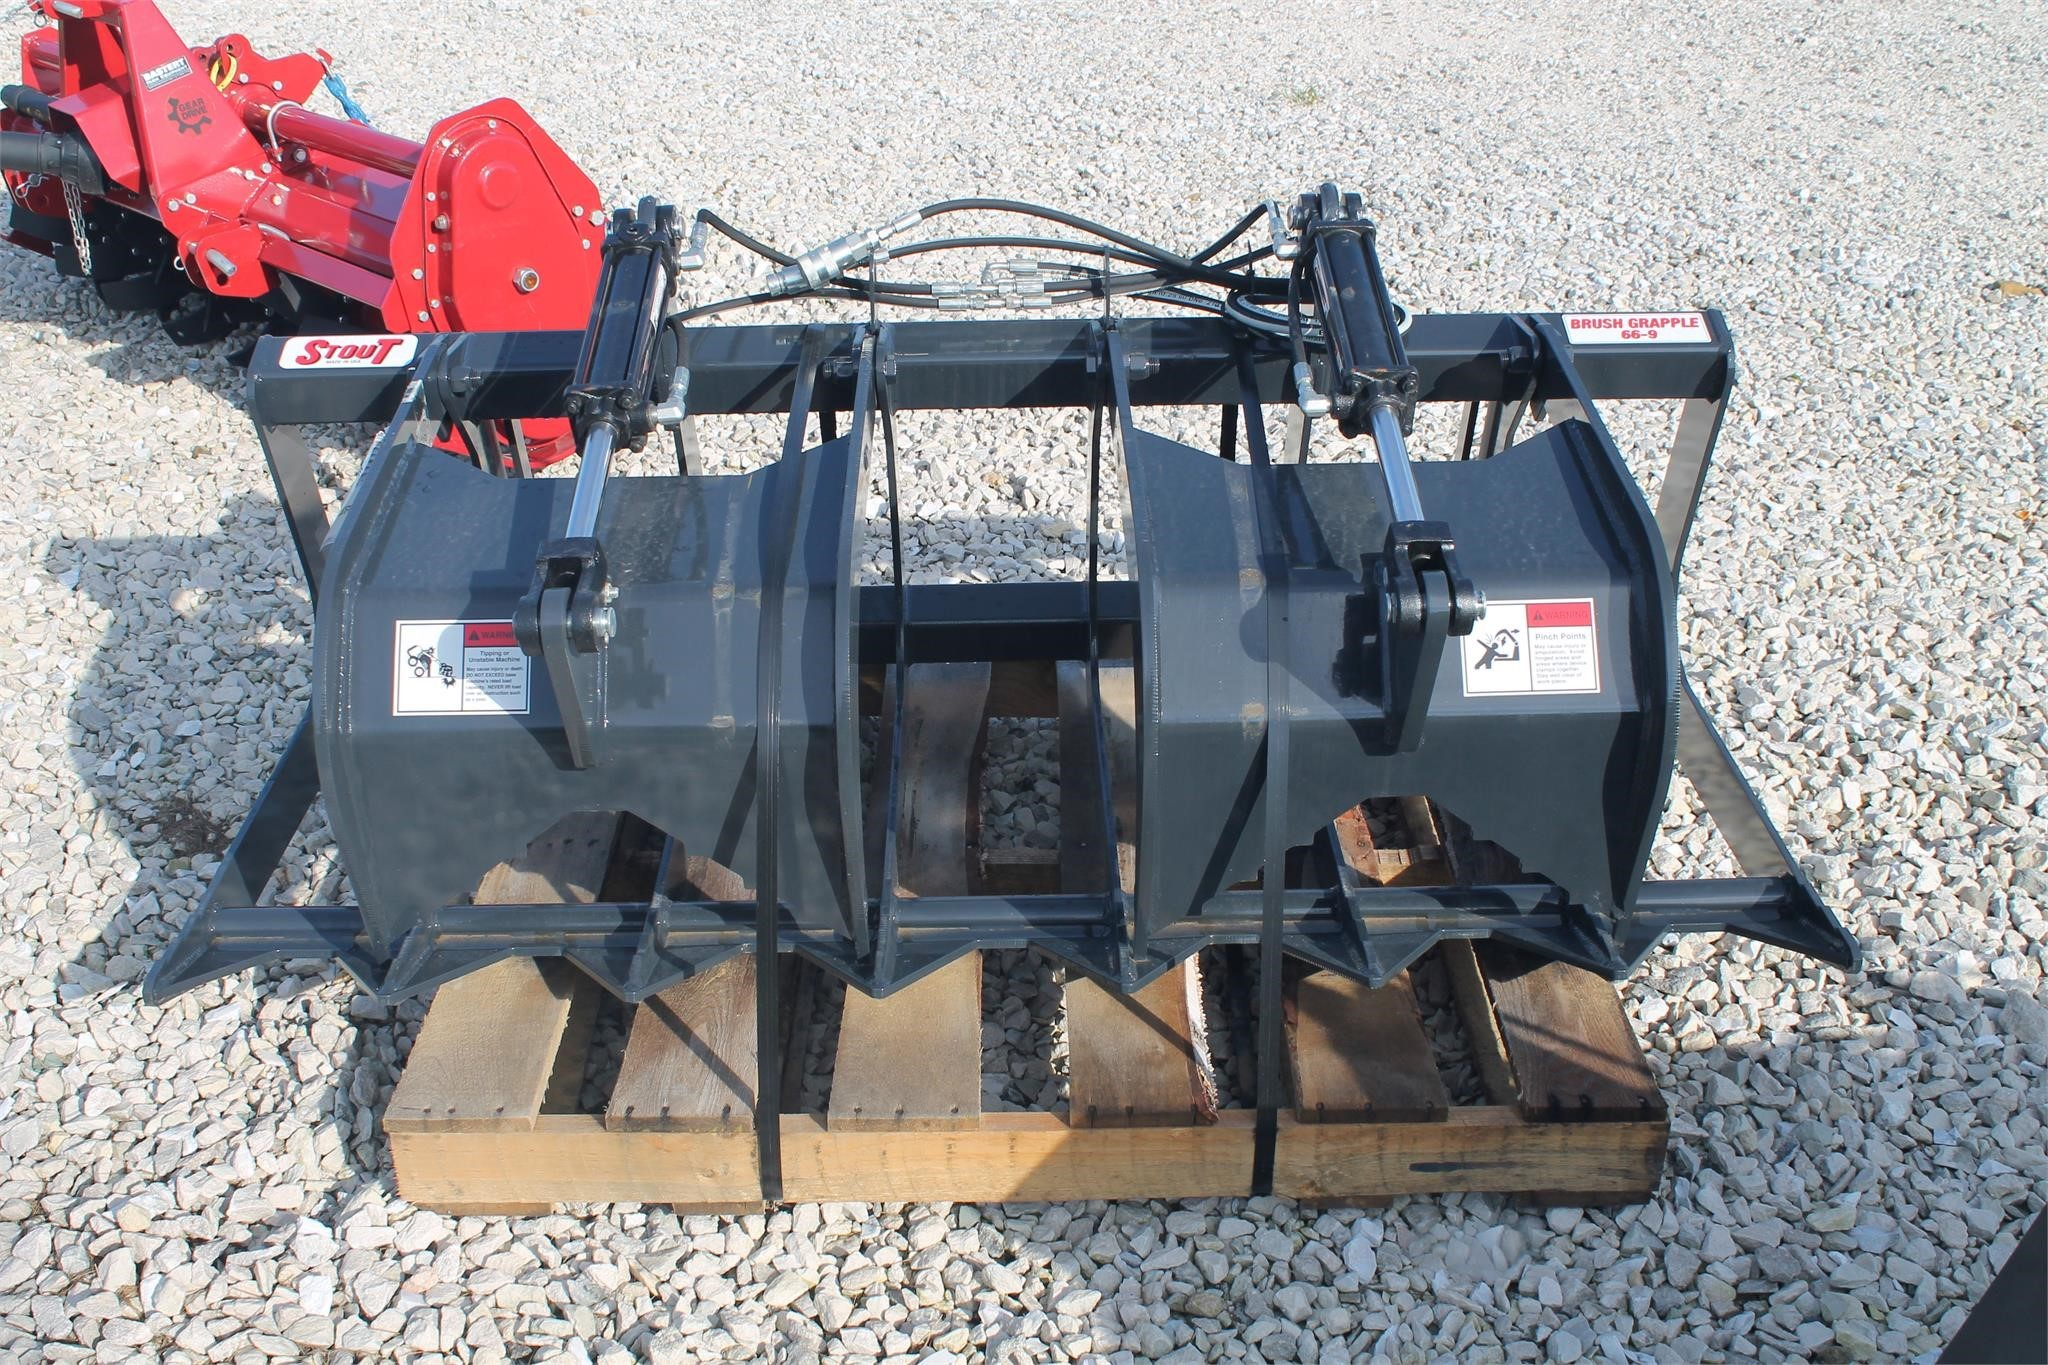 2021 Stout 66-9 Loader and Skid Steer Attachment